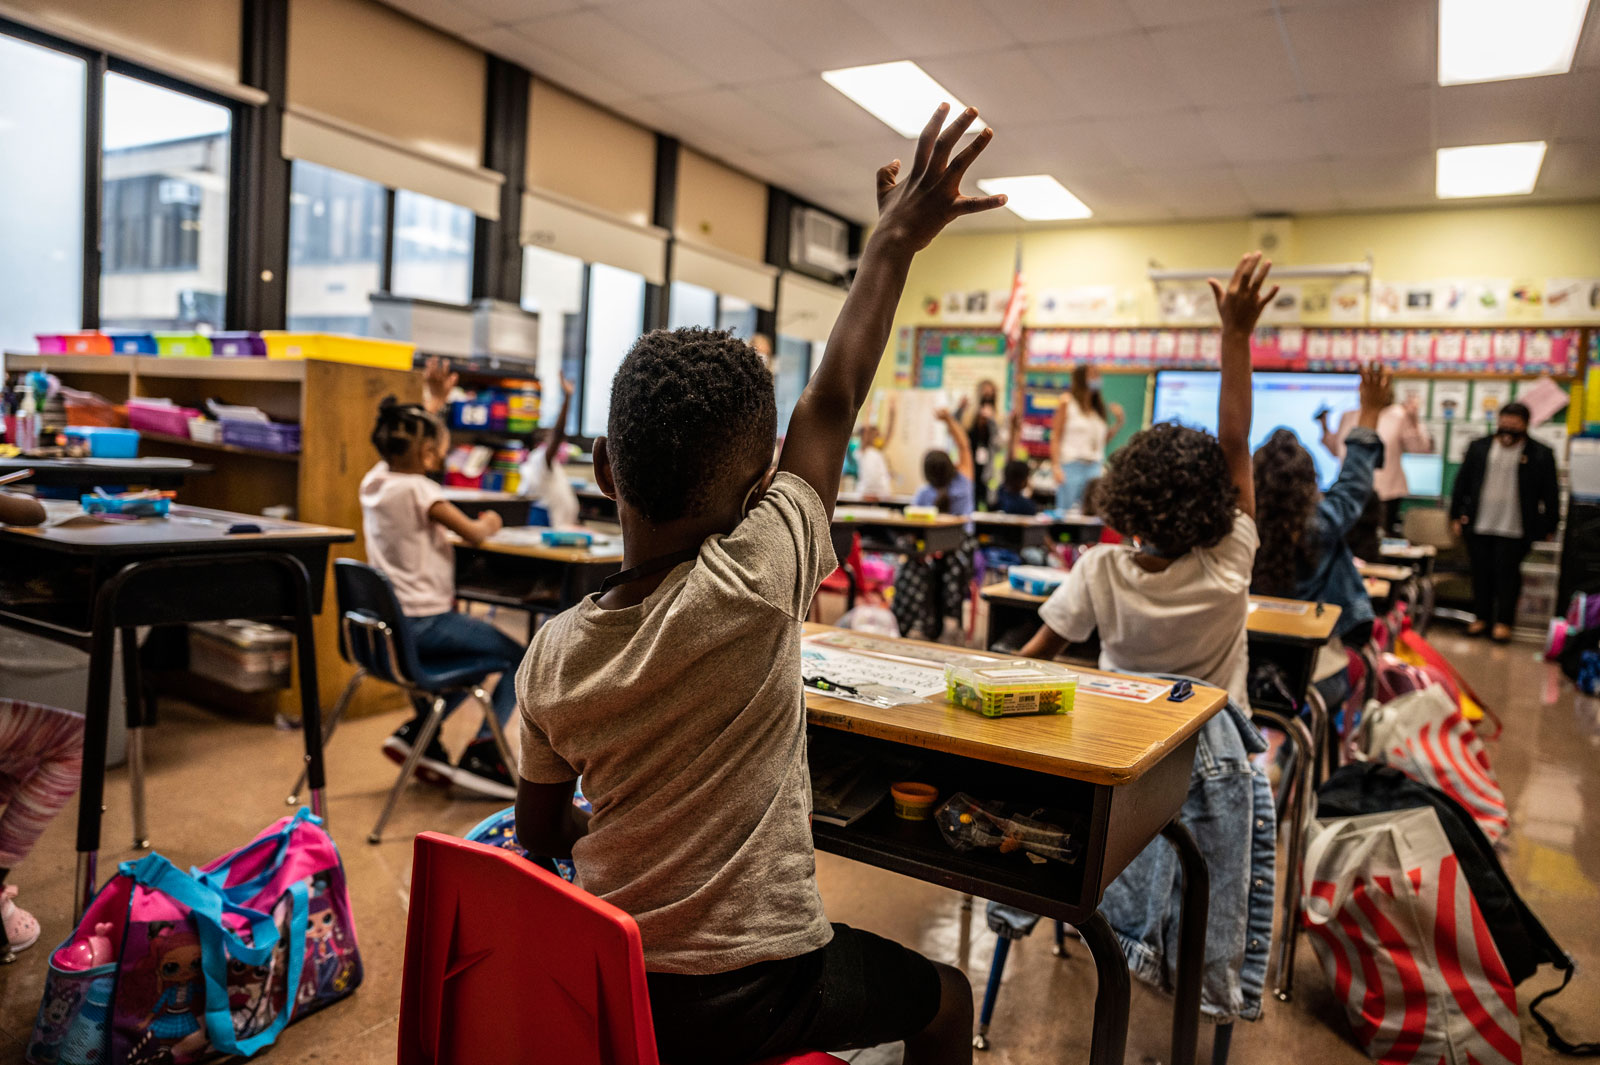 The first day of school at Bayview Avenue School of Arts and Sciences in Freeport, New York on September 1.